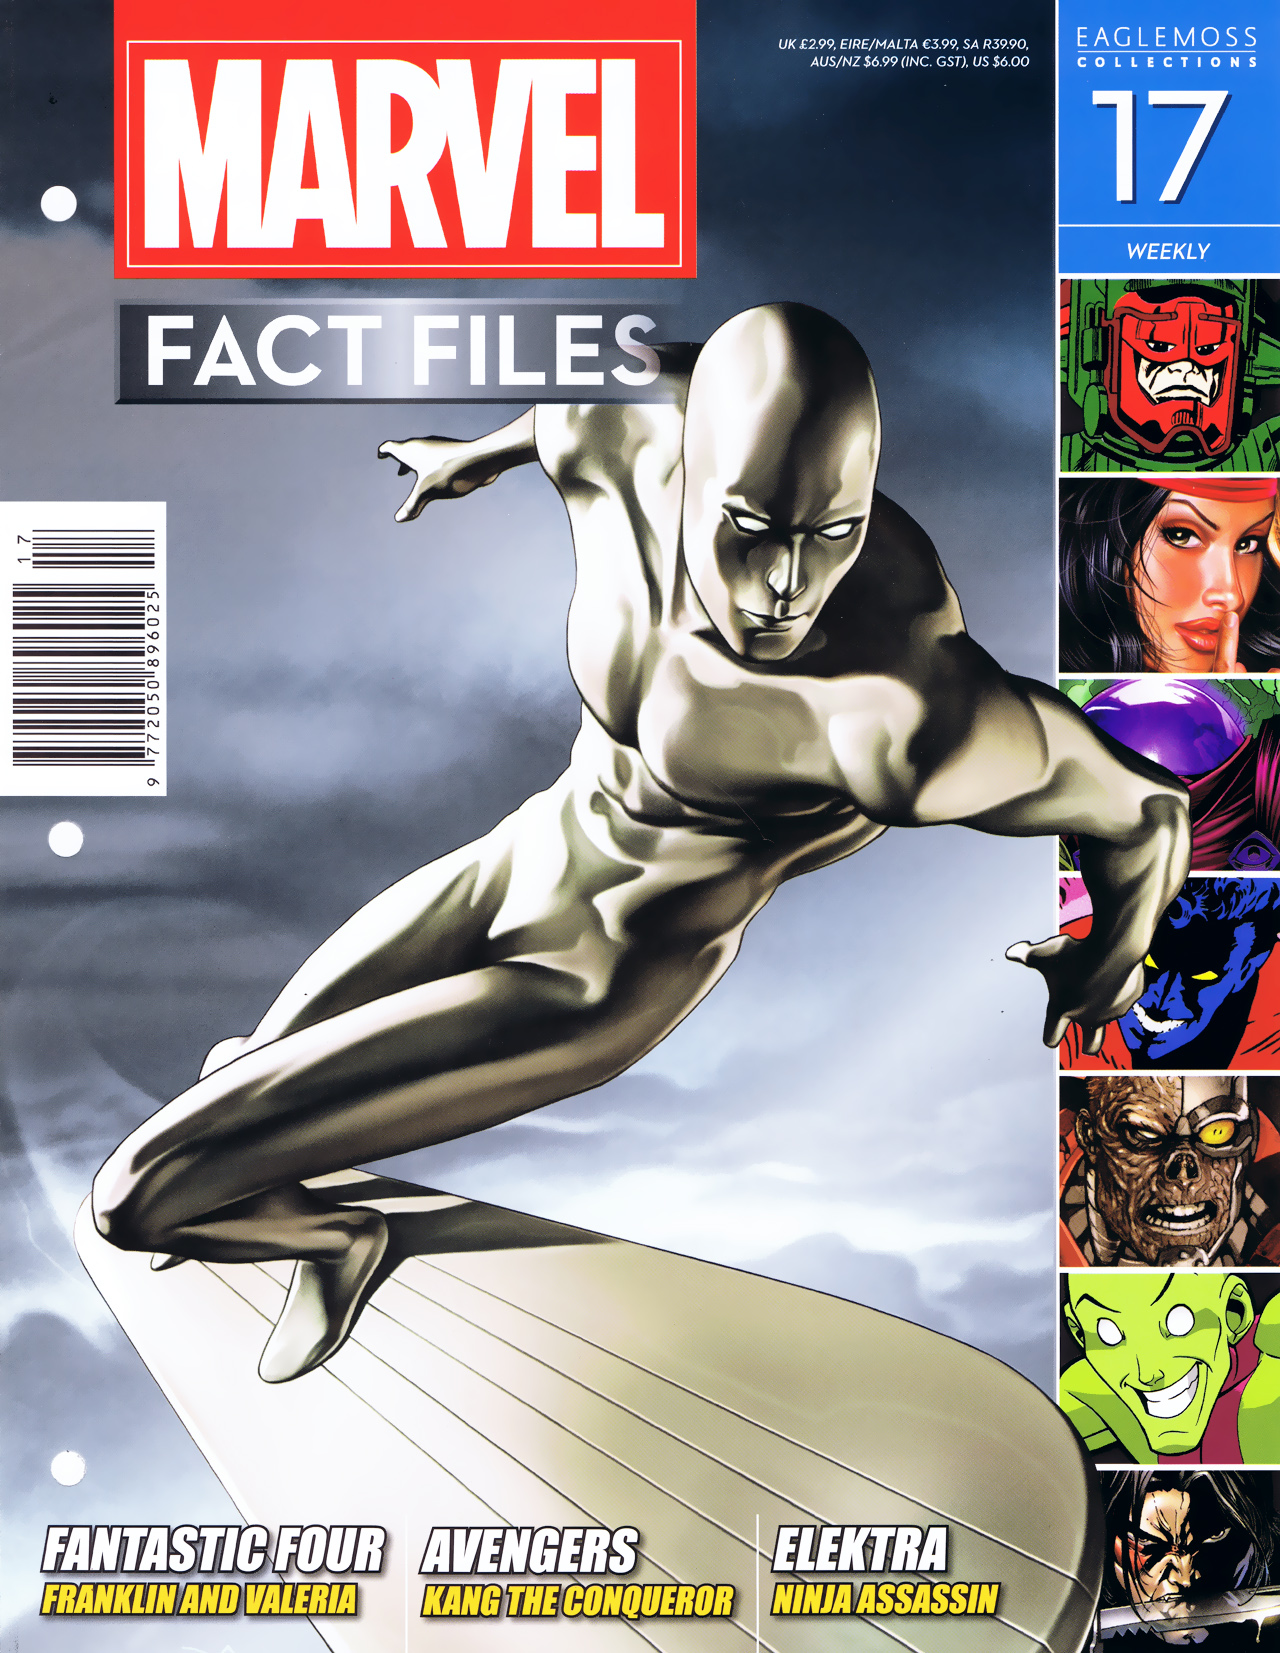 Marvel Fact Files 17 Page 1